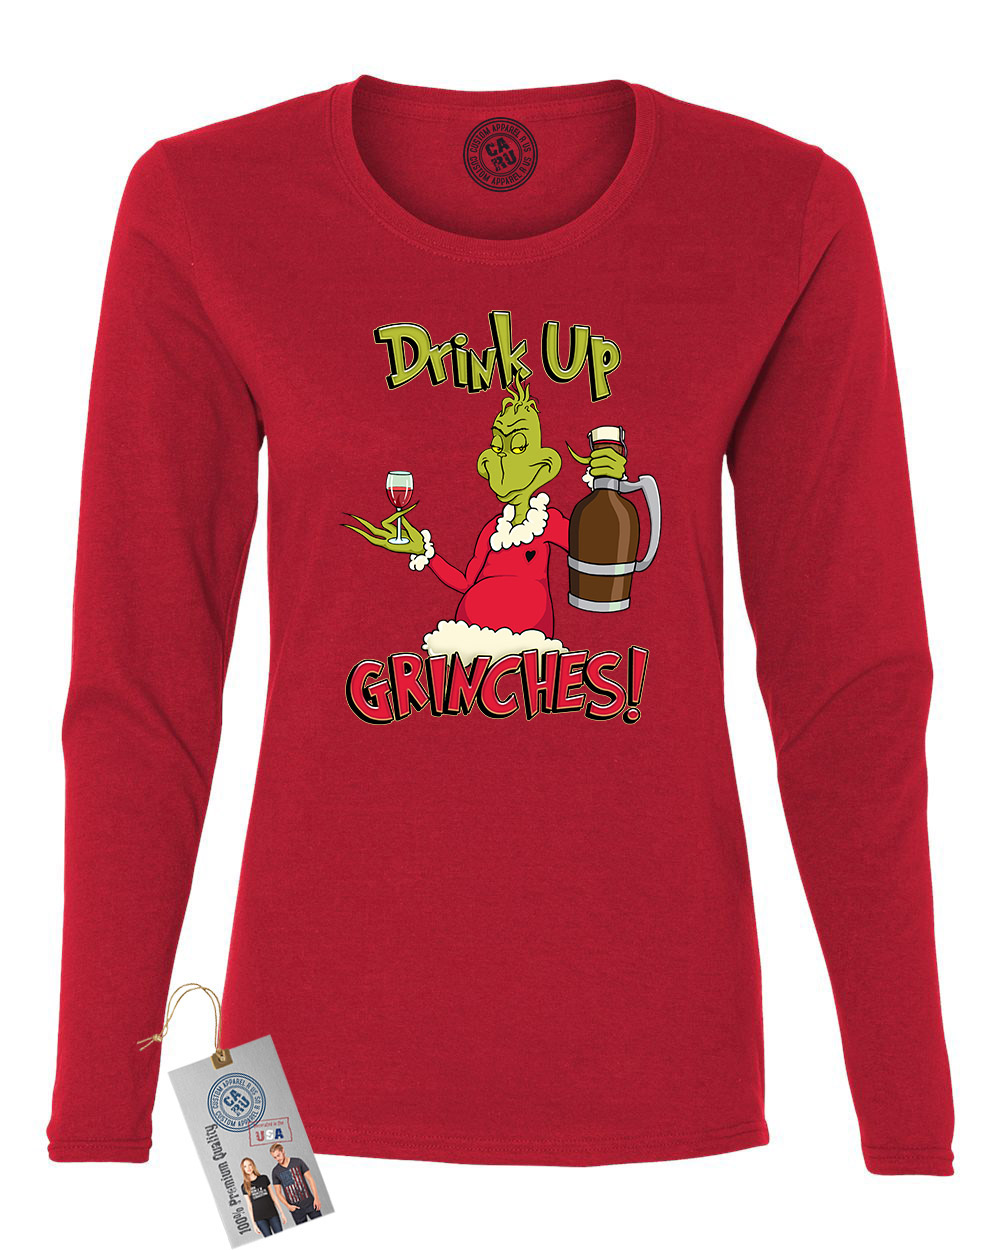 Custom Apparel R Us Drink Up Grinches Womens Long Sleeve